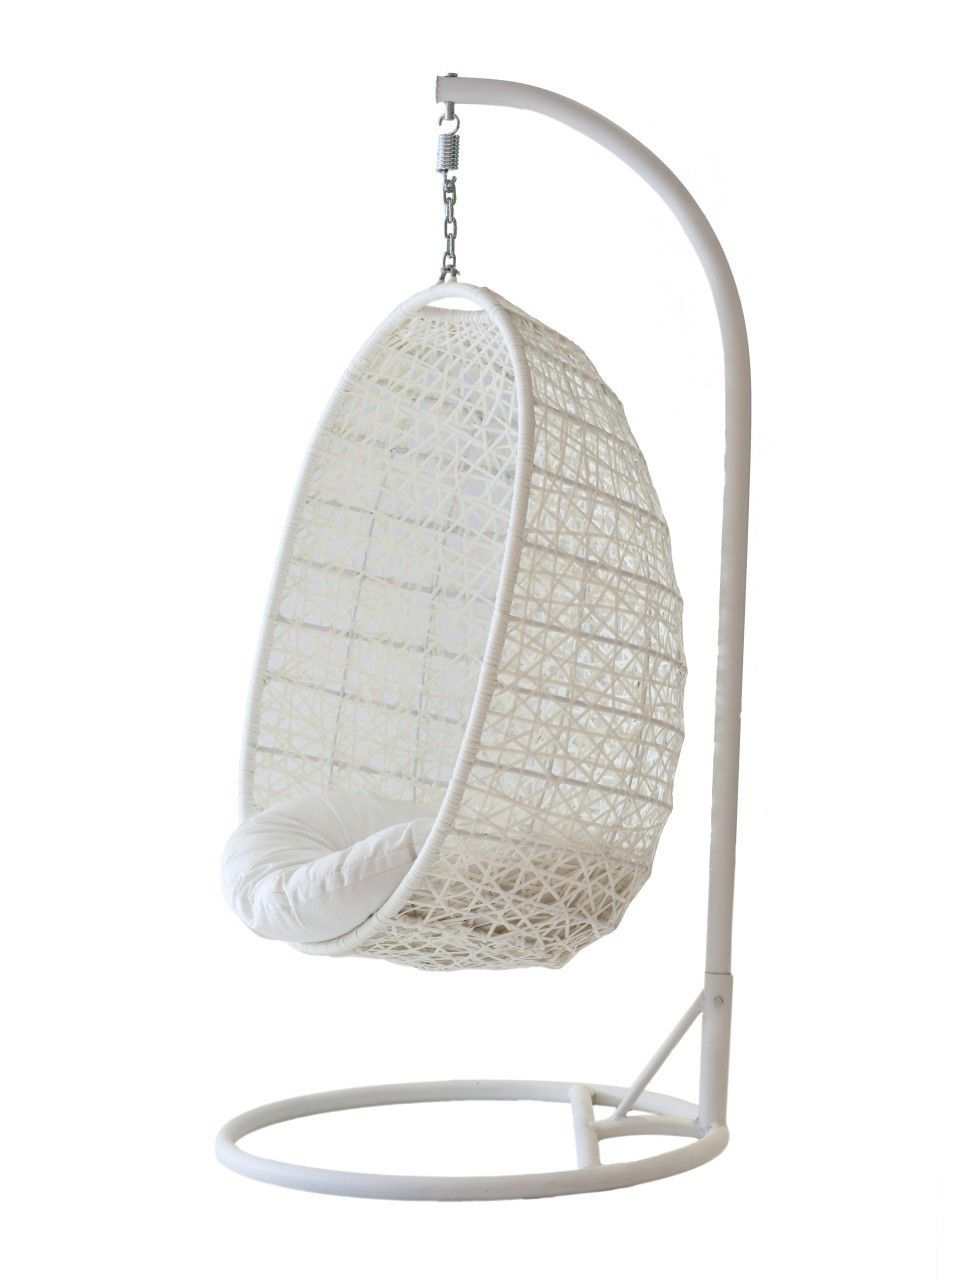 affordable hanging chair for bedroom ikea cool hanging chairs for rh pinterest com